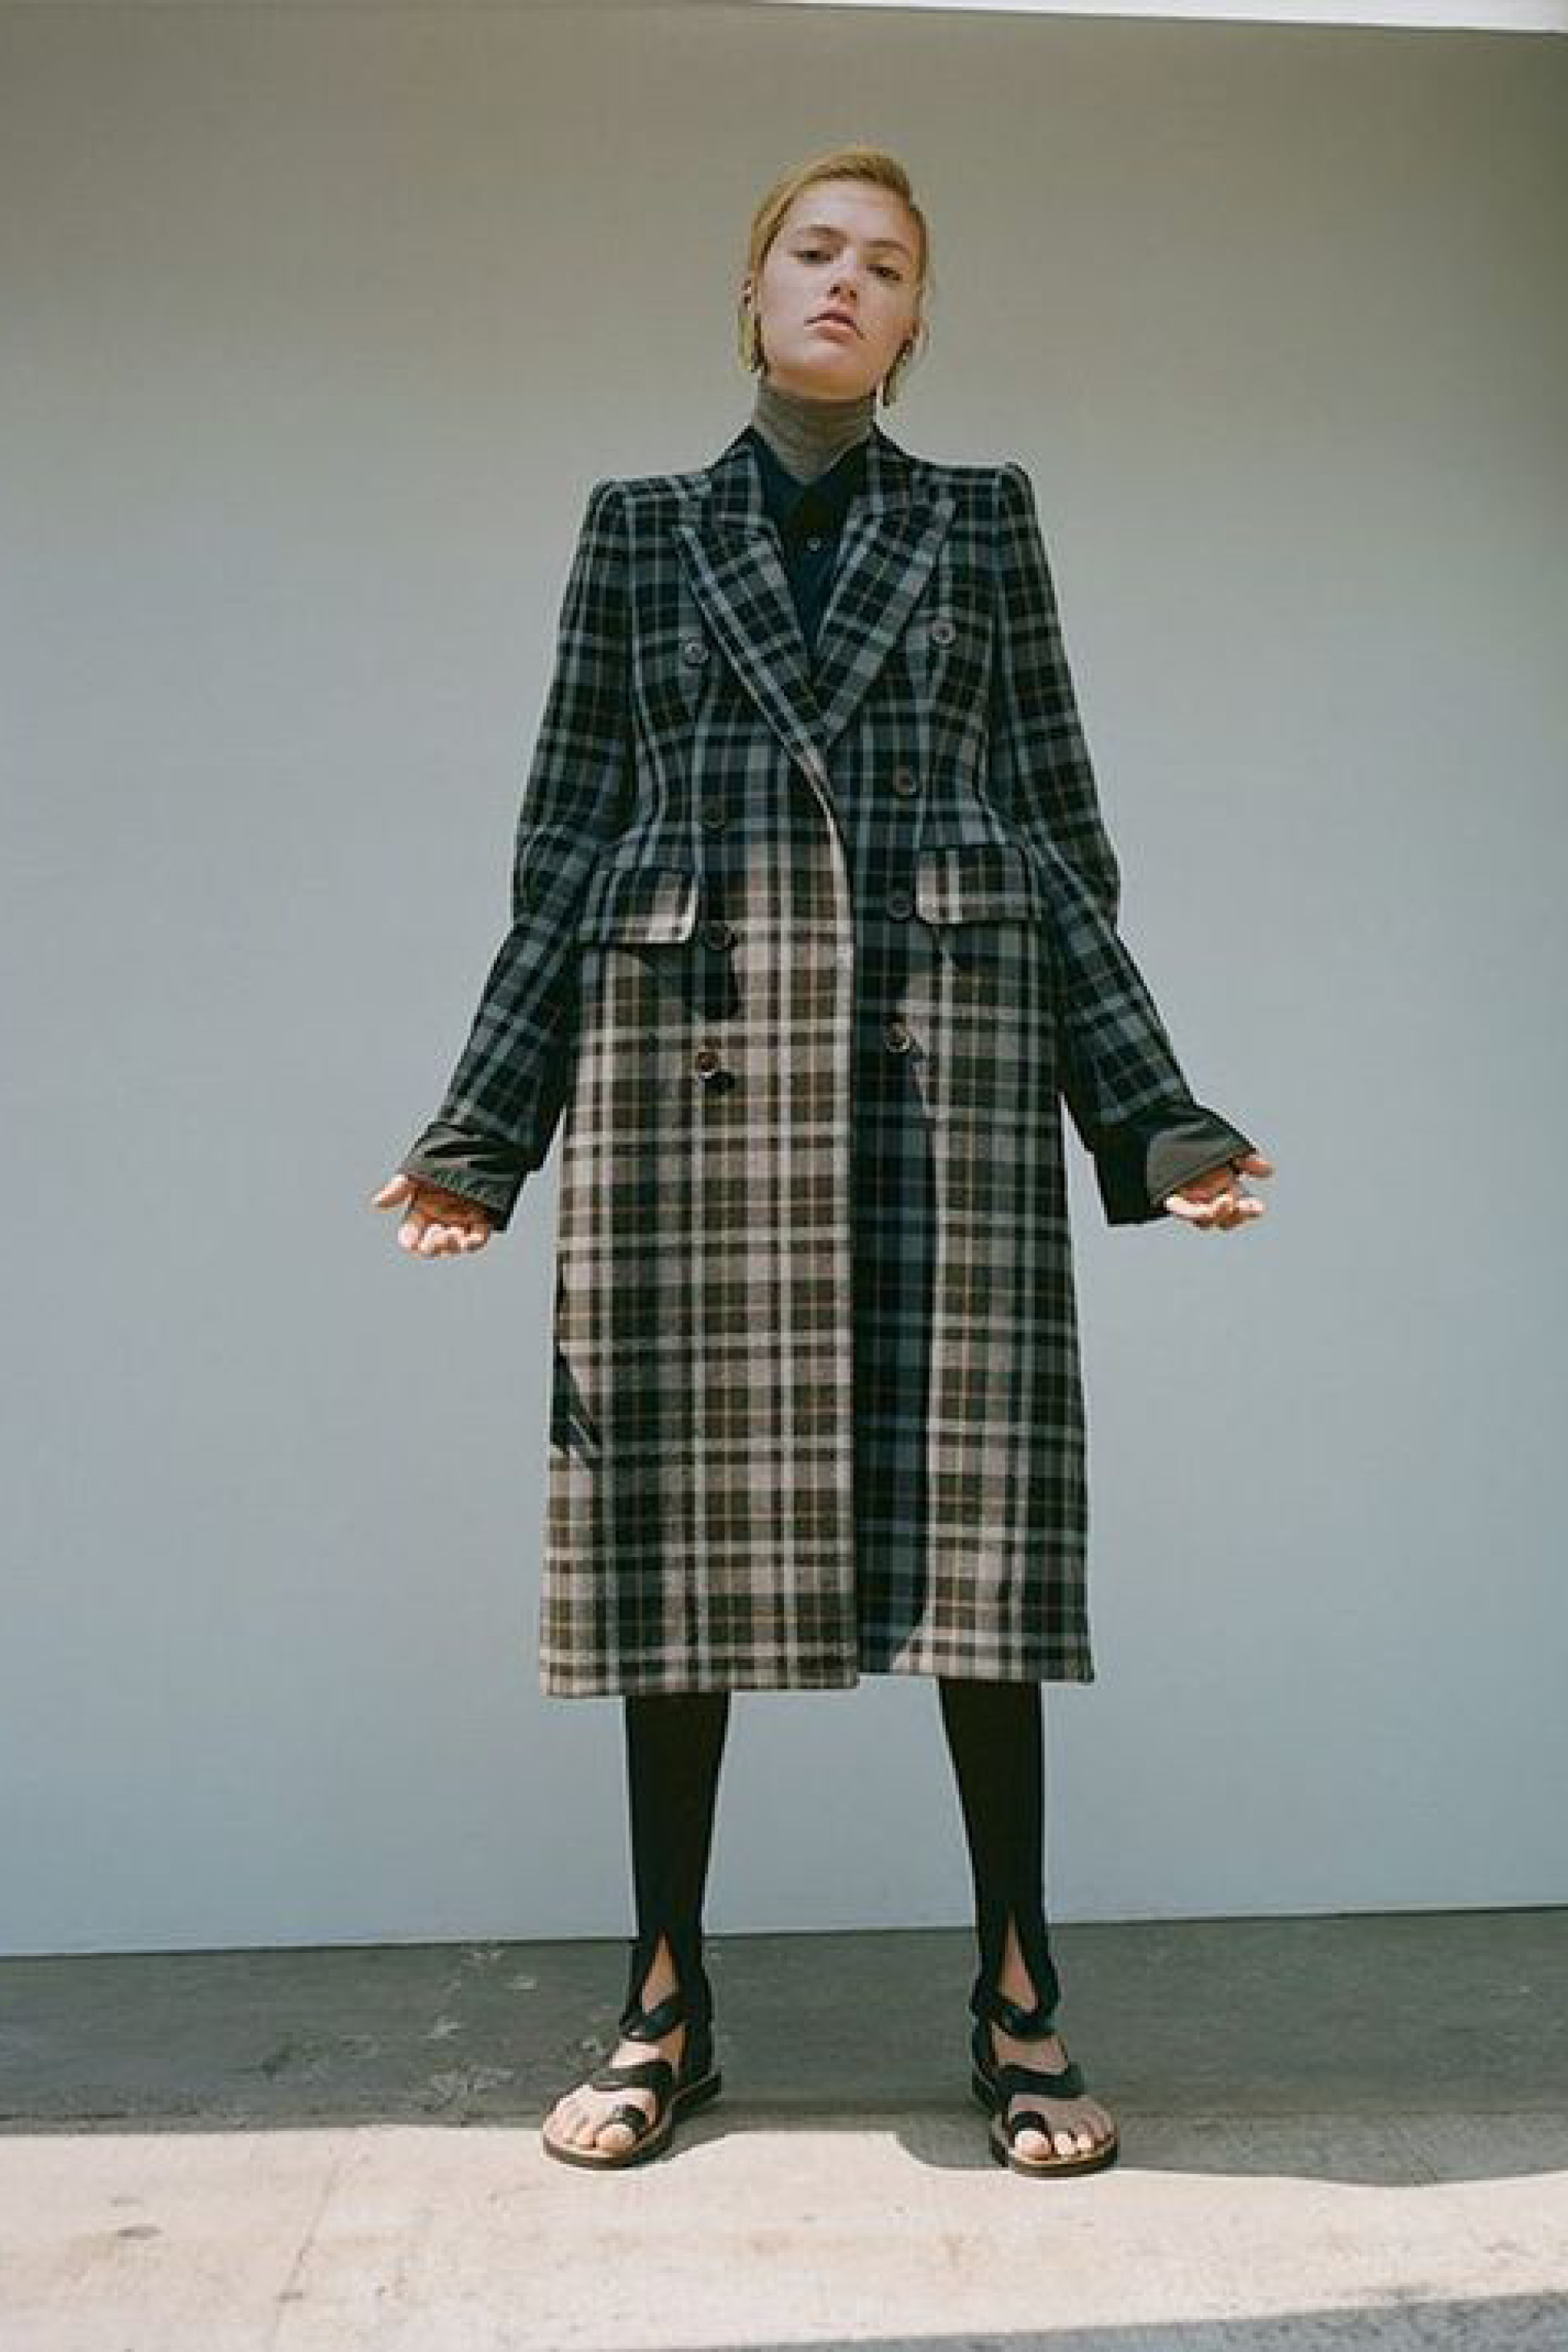 Balenciaga Coat. Photograph by Laurence Ellis. Styled by Alex Harrington